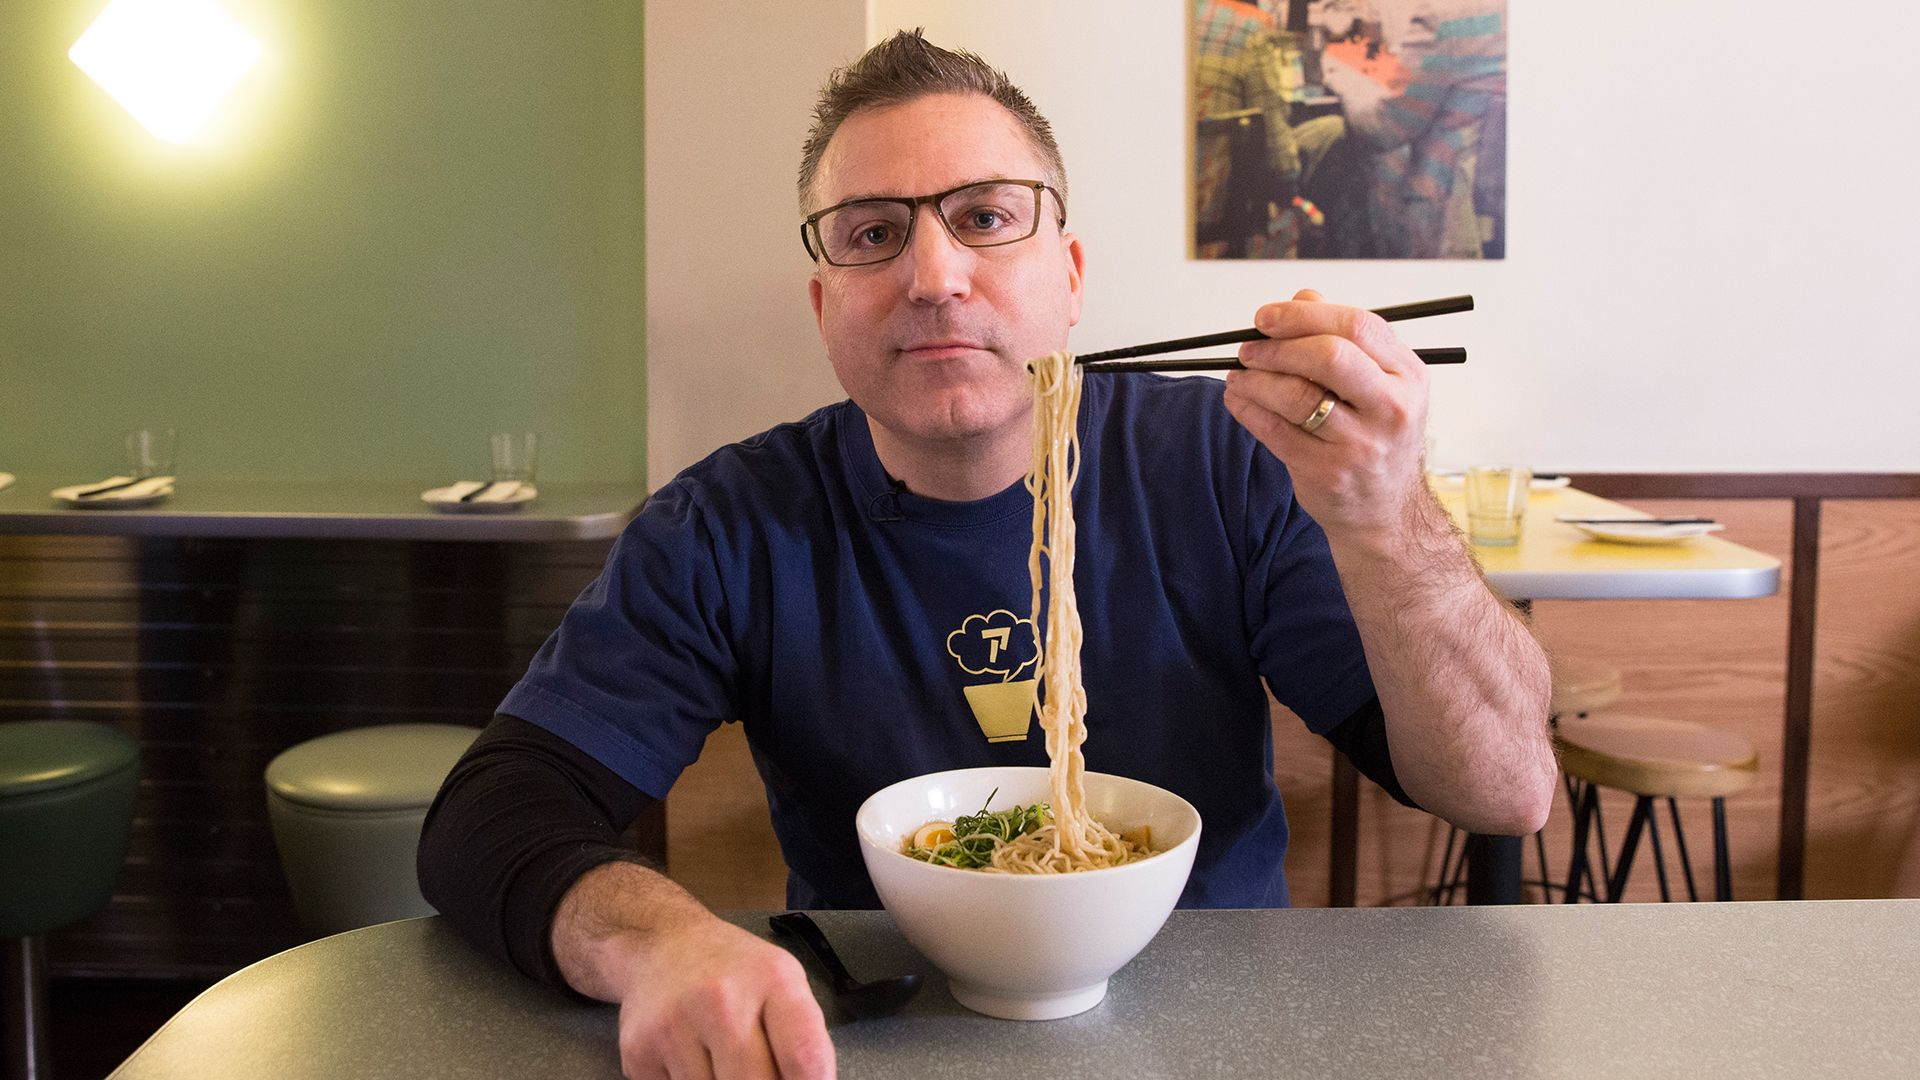 You're Doing It Wrong: How to Eat Ramen the Japanese Way